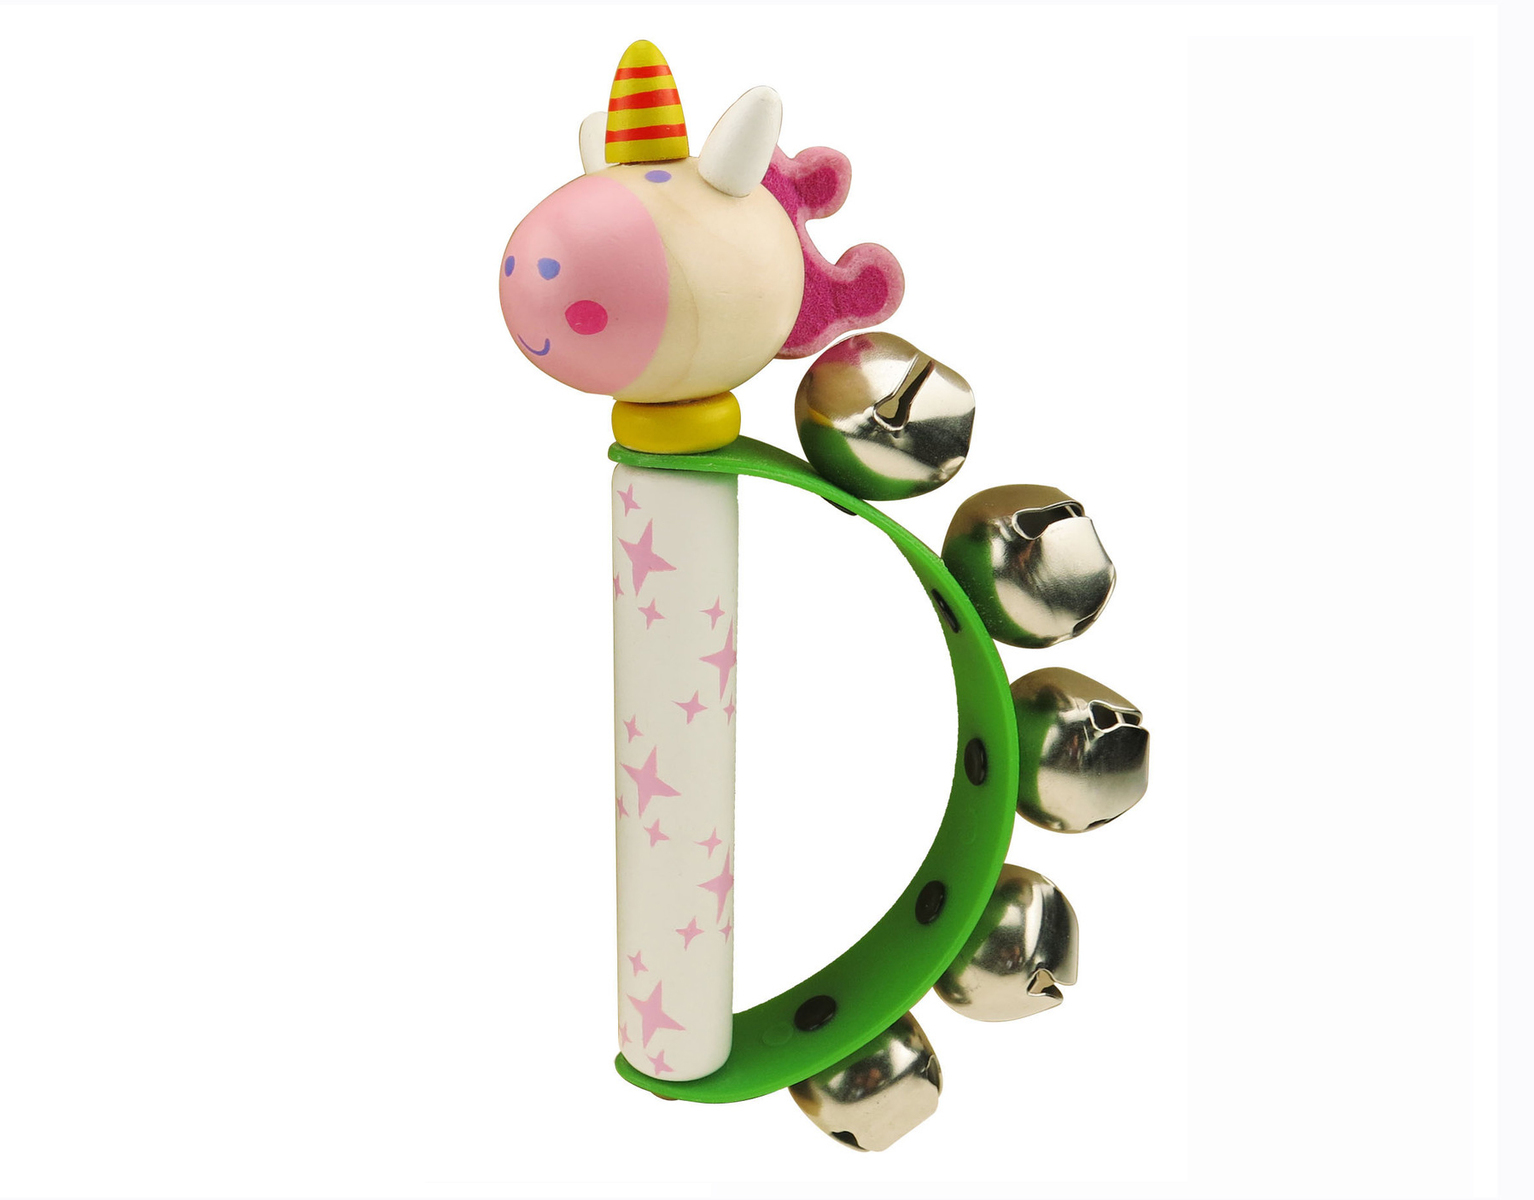 Unicorn Hand Bell by Kaper Kids 0+